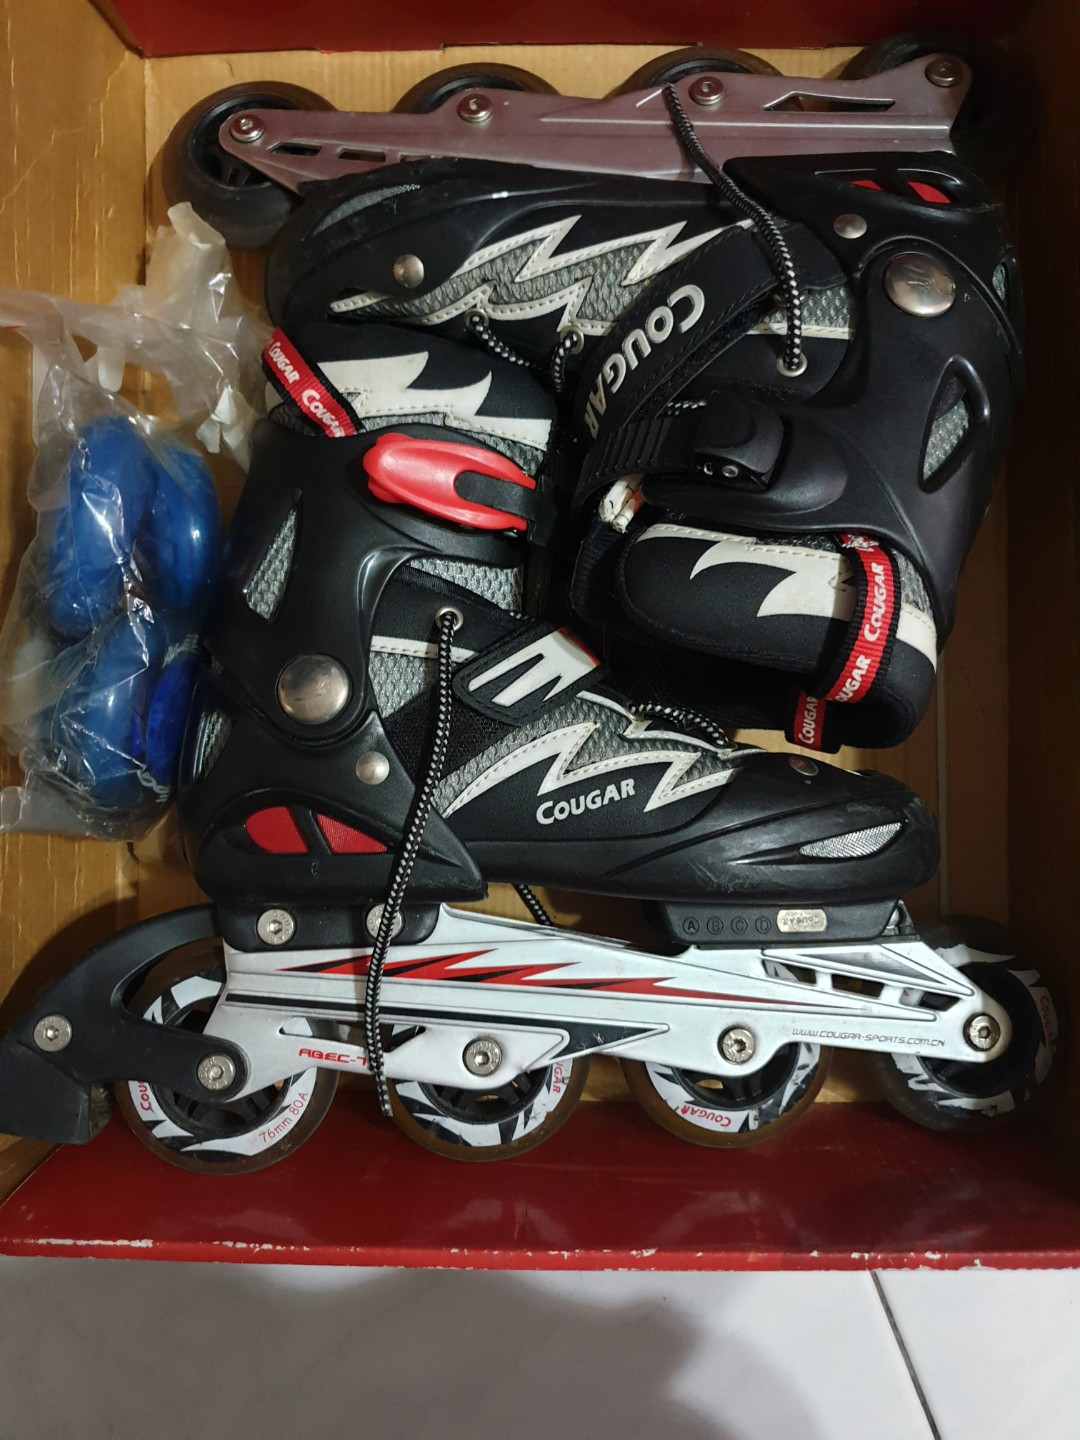 1a014512675 Cougar roller skates L:36-39, Bicycles & PMDs, Personal Mobility ...